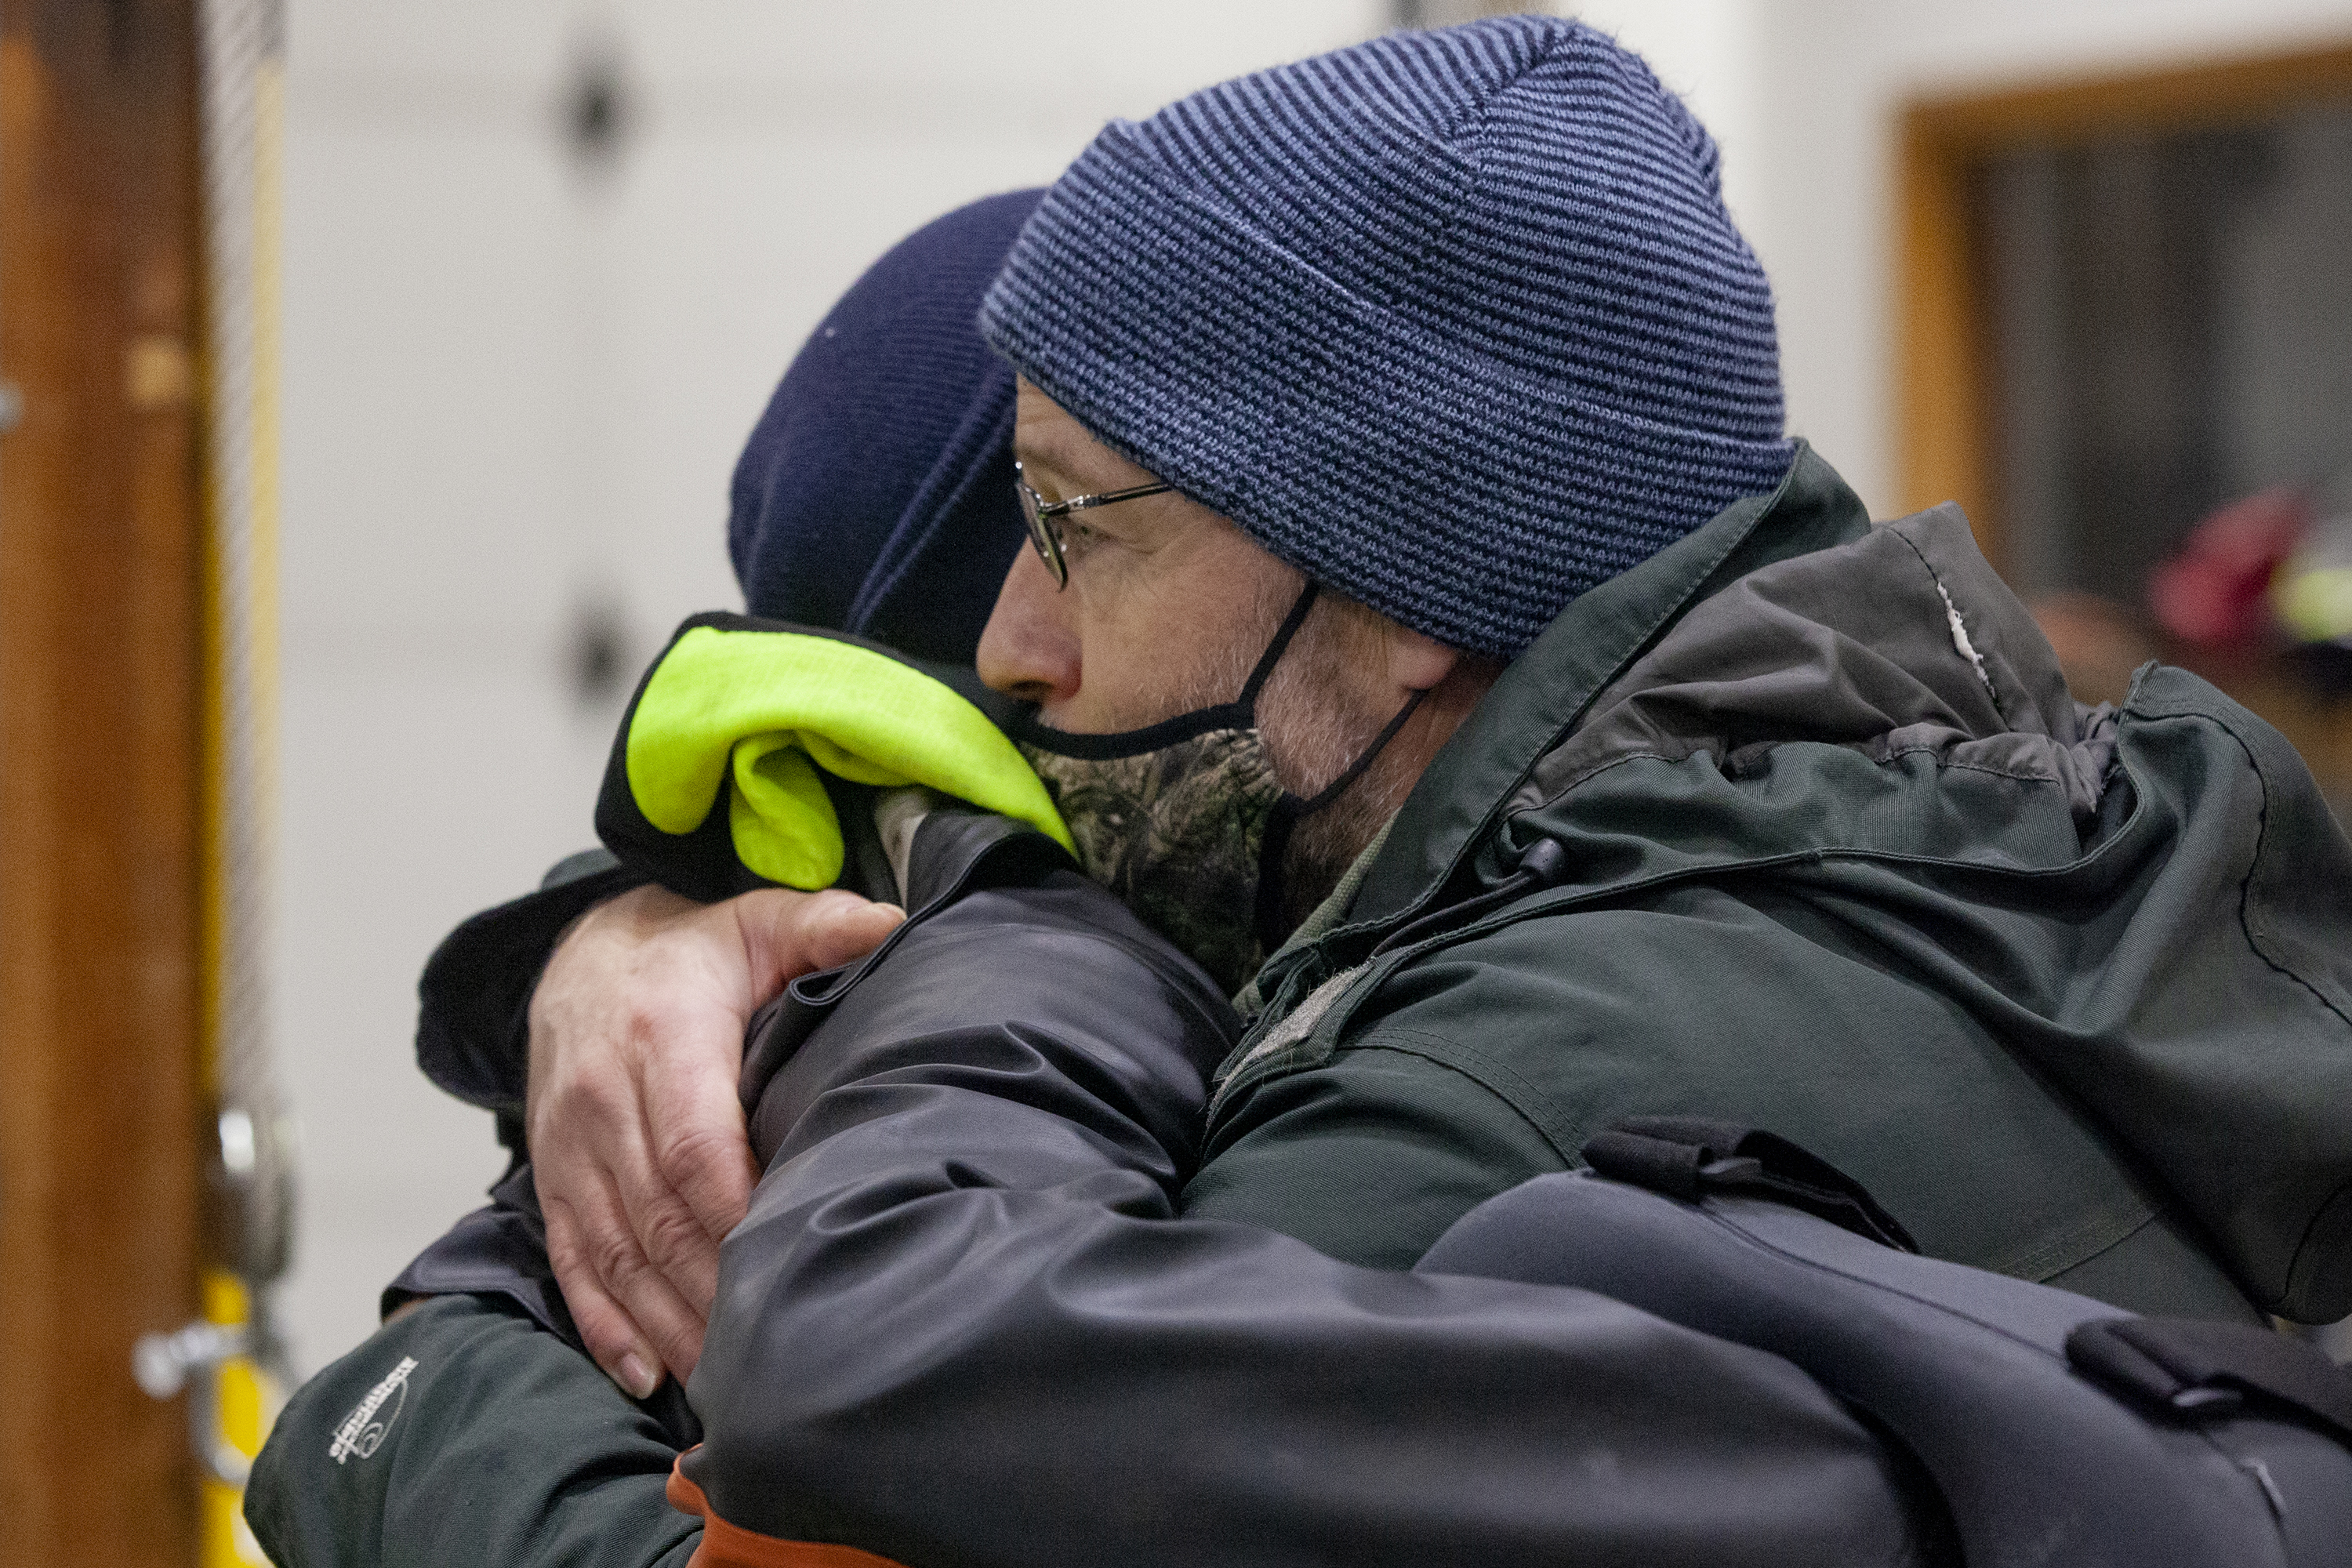 Doug Larson reacts after hearing that Alaska State Troopers are calling off their search for his missing daughter, Jenae Larson, on Monday, Dec. 7, 2020, in Haines, Alaska. Larson and her landlord, Haines resident David Simmons have been missing since a 600-foot landslide swept through their home during a record-breaking rainfall. (Photo by Rashah McChesney/KTOO)